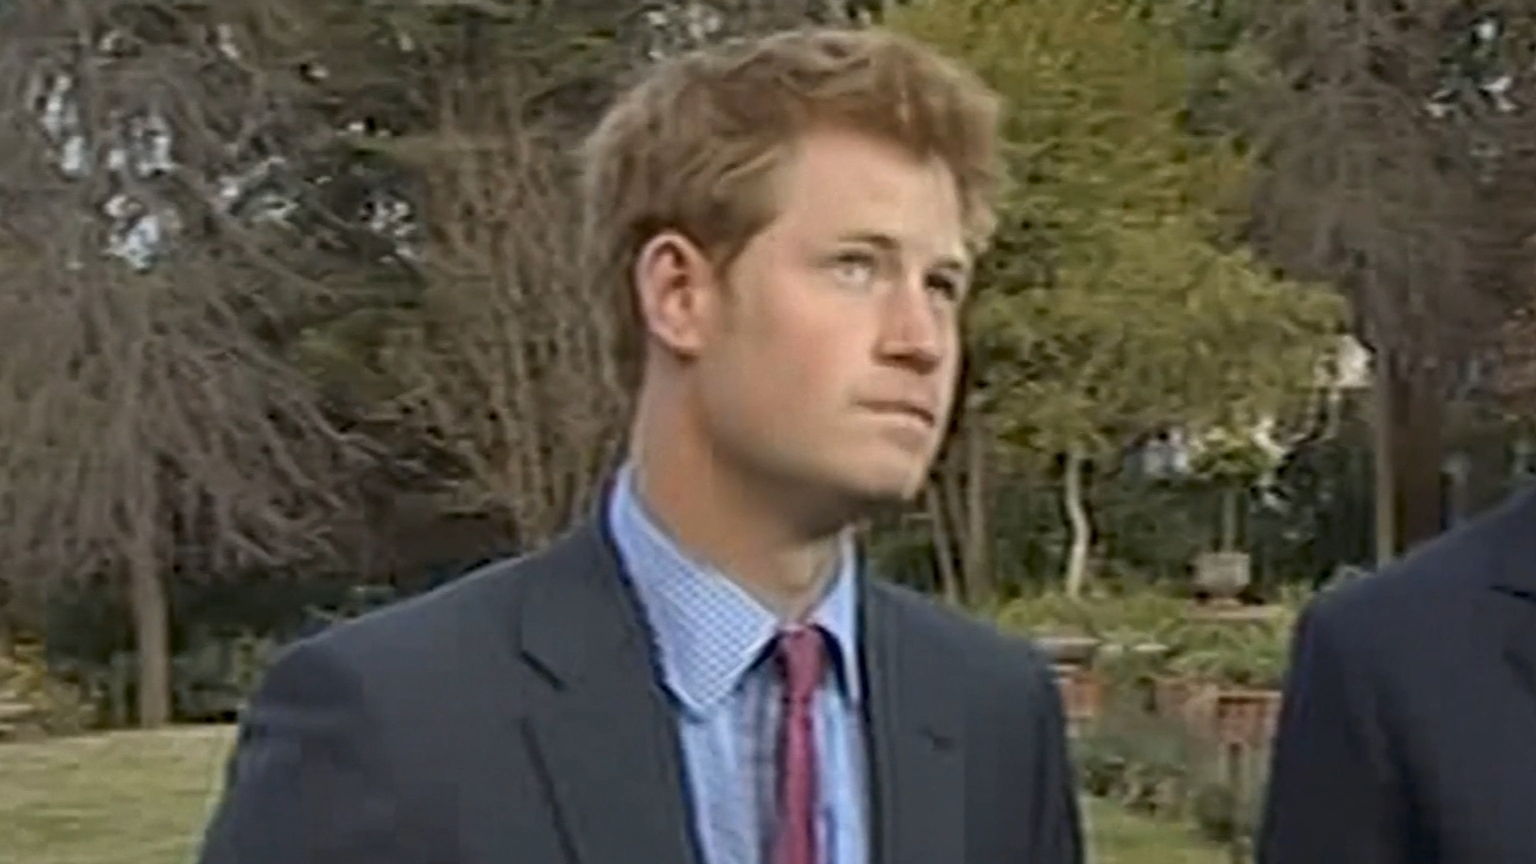 Prince Harry recalls 'nightmare years' after Diana's death